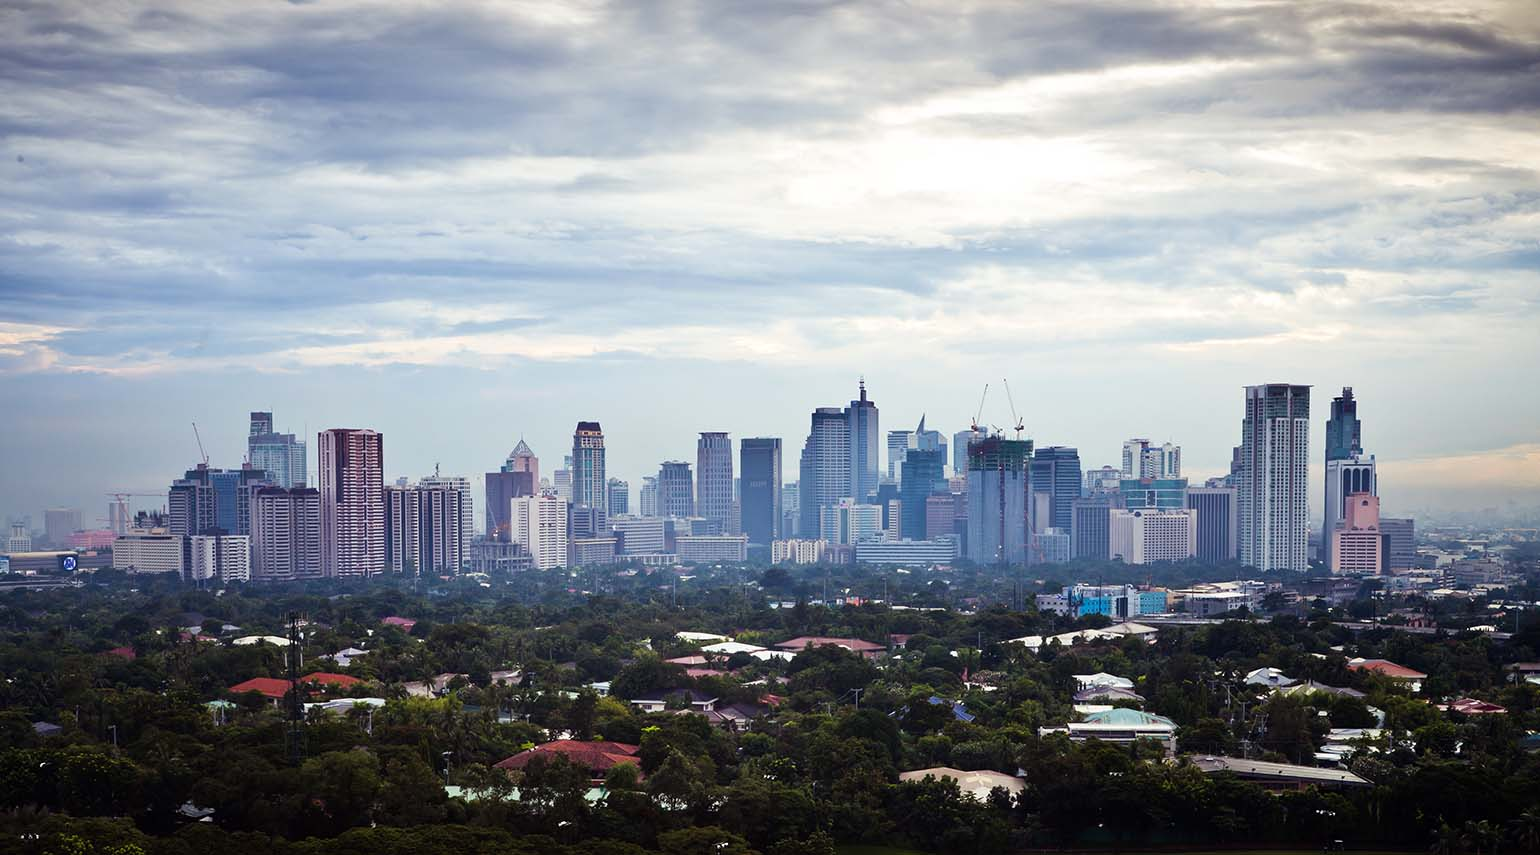 tips for buying a foreclosed home with Properties In The Philippines Philippine Real Estate For on Home Buying The New Trend besides Kims Reports Cybercrimes You Need To Know About additionally Kennesaw Ga Foreclosed Homes For Sale besides Dark Blue Kitchen Cabi s moreover New One Story House Plans.